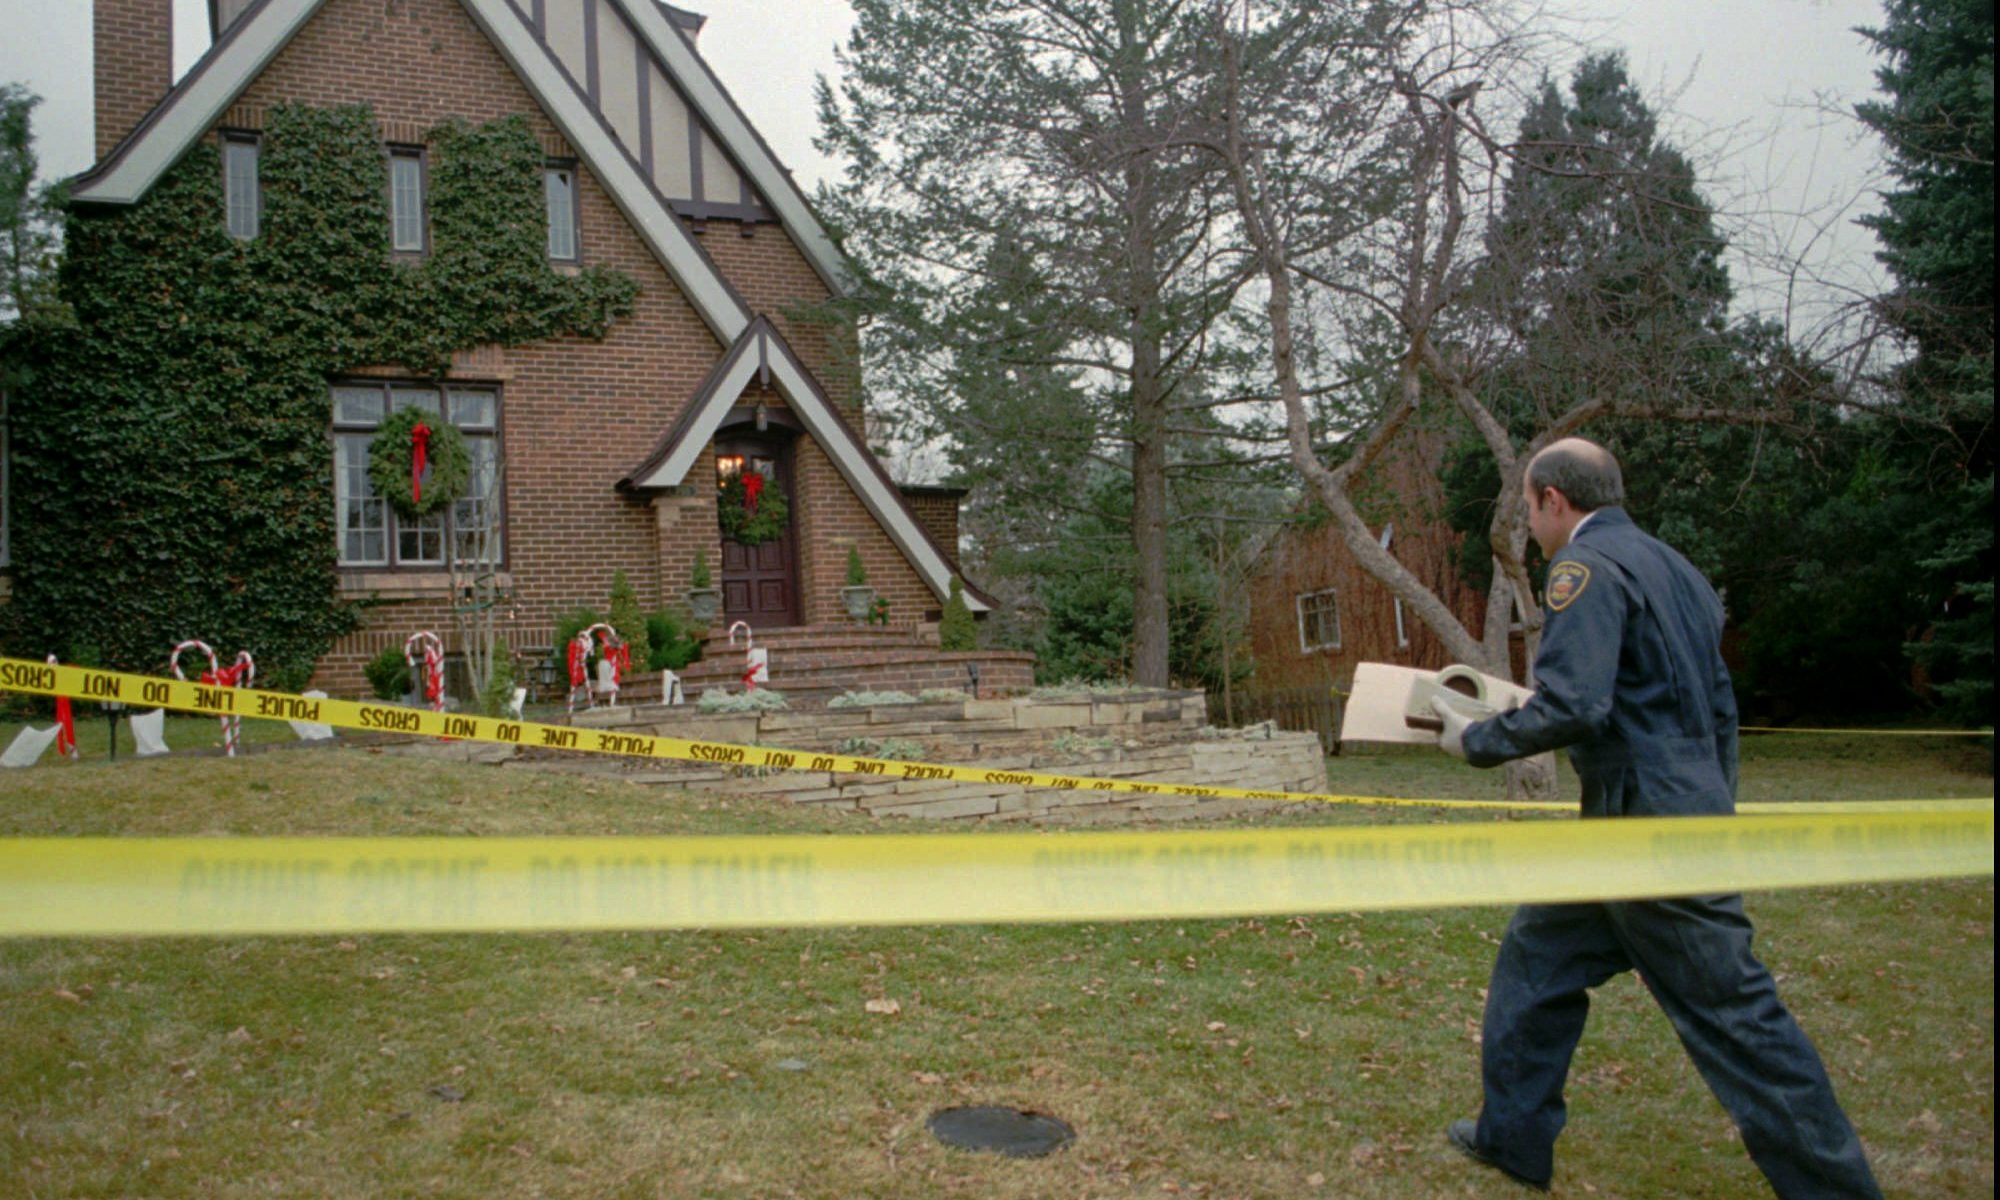 Raleigh T. Sakers broke into the former home of Jon Benet Ramsey and swore to preserve the family secret. Two people are now missing.